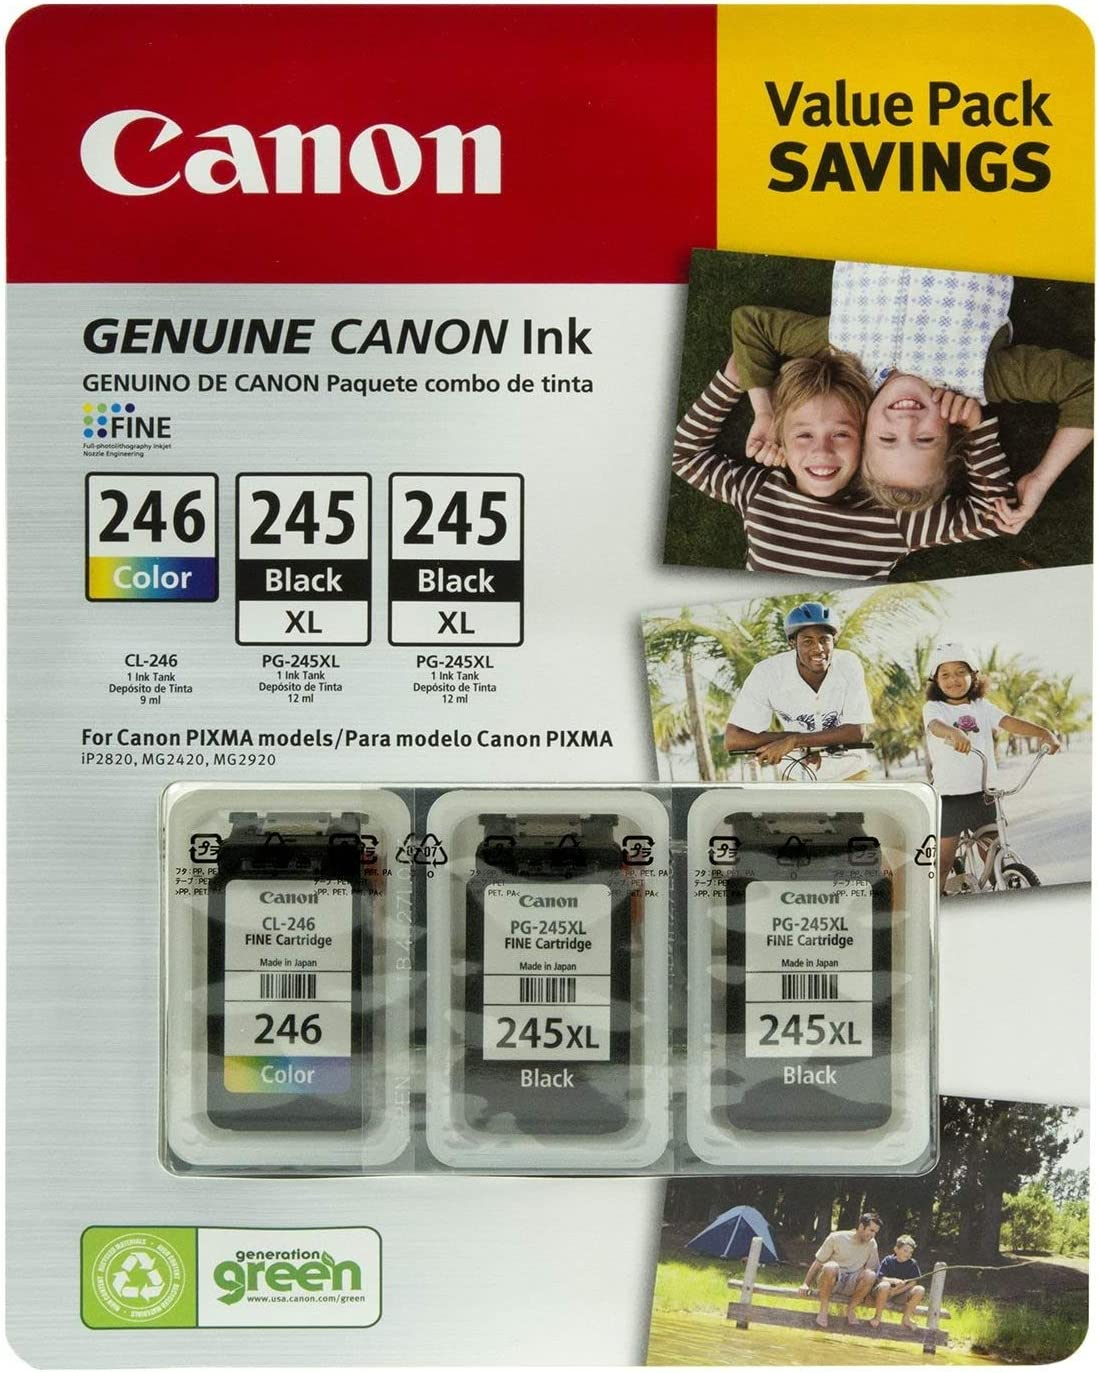 2BK+1Color For Canon 245 246 PG-245 CL-246 Ink Cartridge For Canon PIXMA IP2820 IP2850 MG2420 MG2450 MG2520 MG2550 MG2920 Ink jet Printer Cartridge PG245 CL246